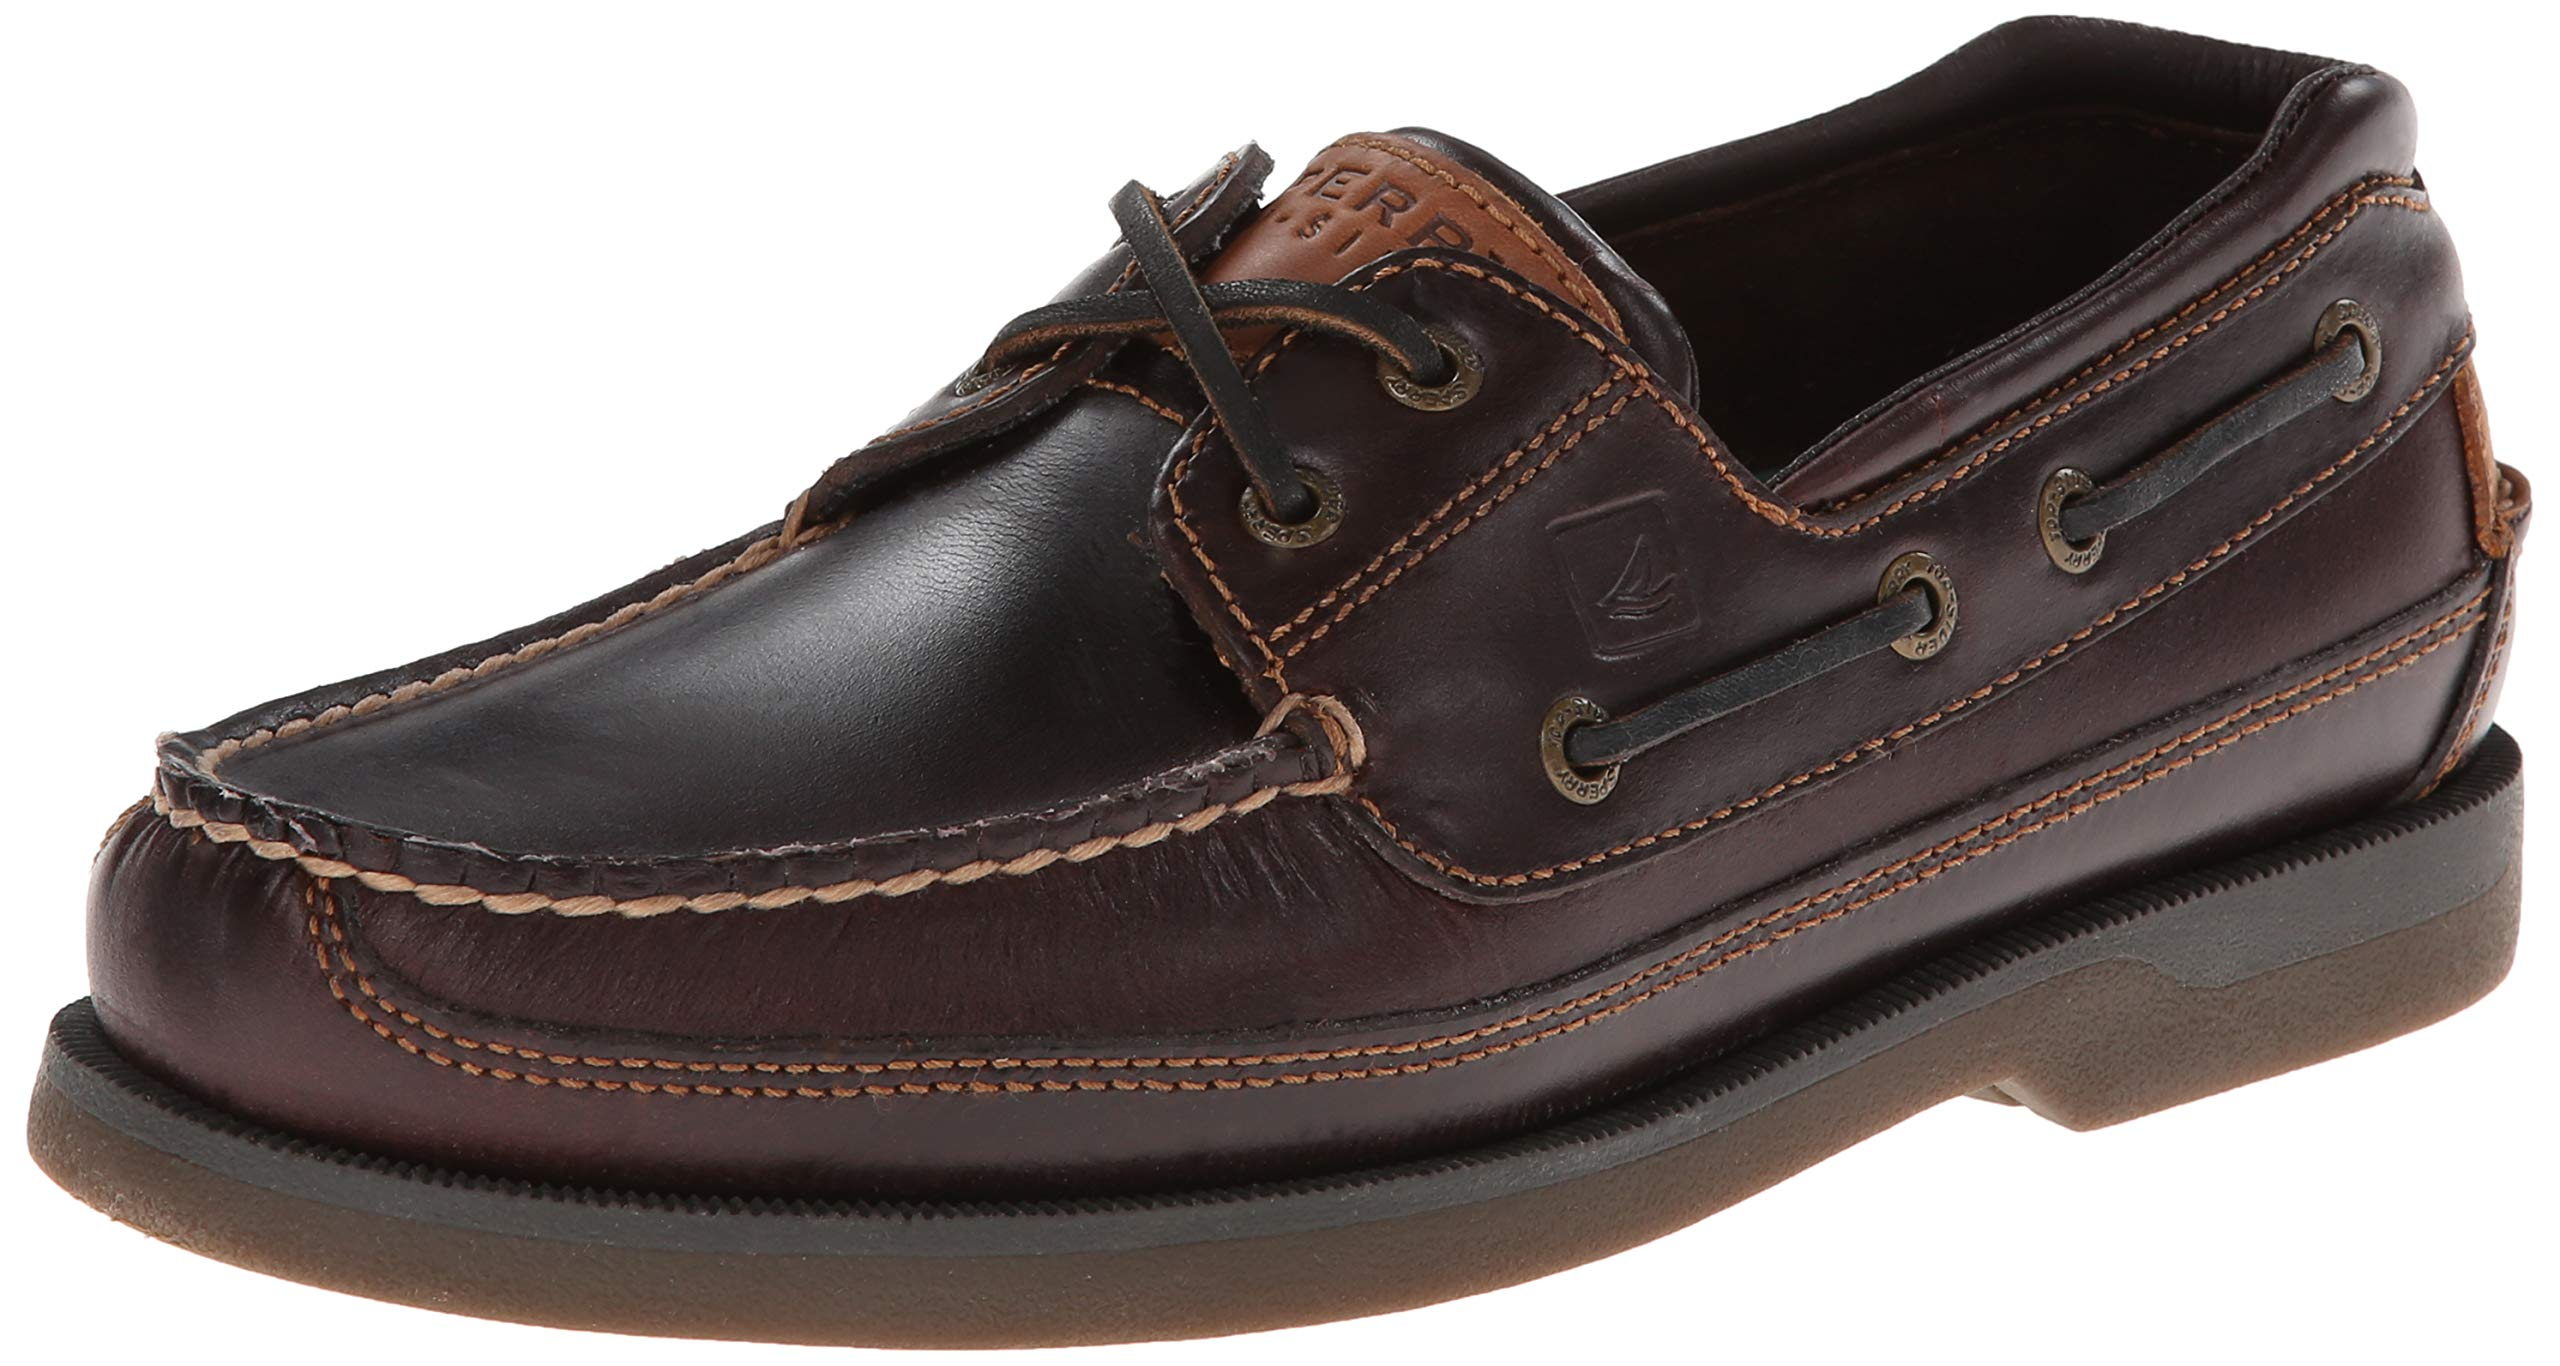 Sperry Mens Mako 2-Eye Boat Shoe, Amaretto, 10.5 Wide by SPERRY